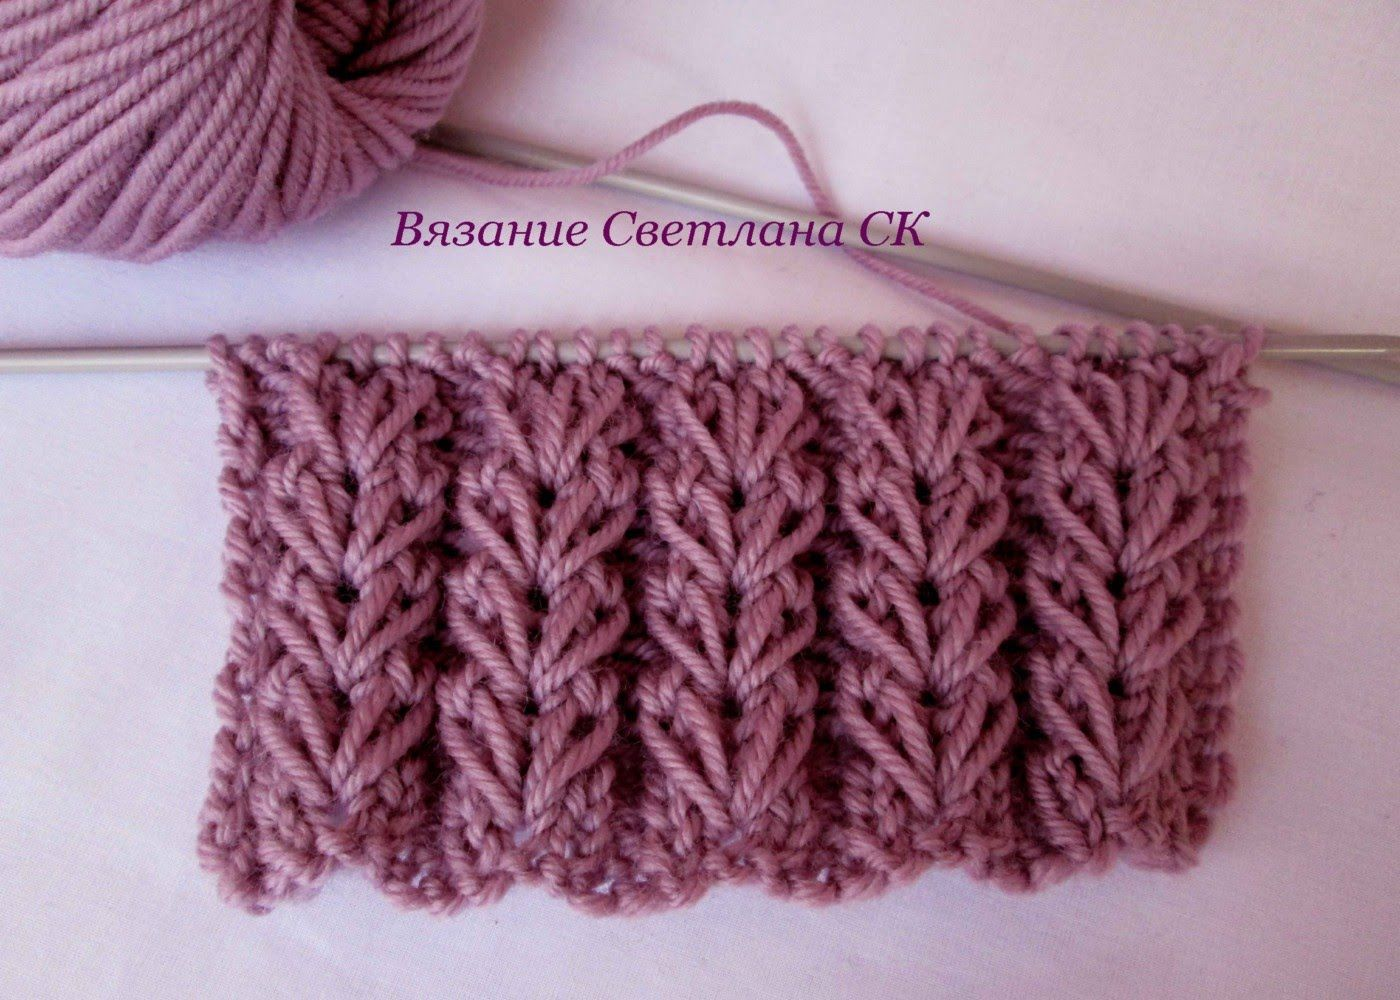 How to knit elongated crochet loops: several options 77